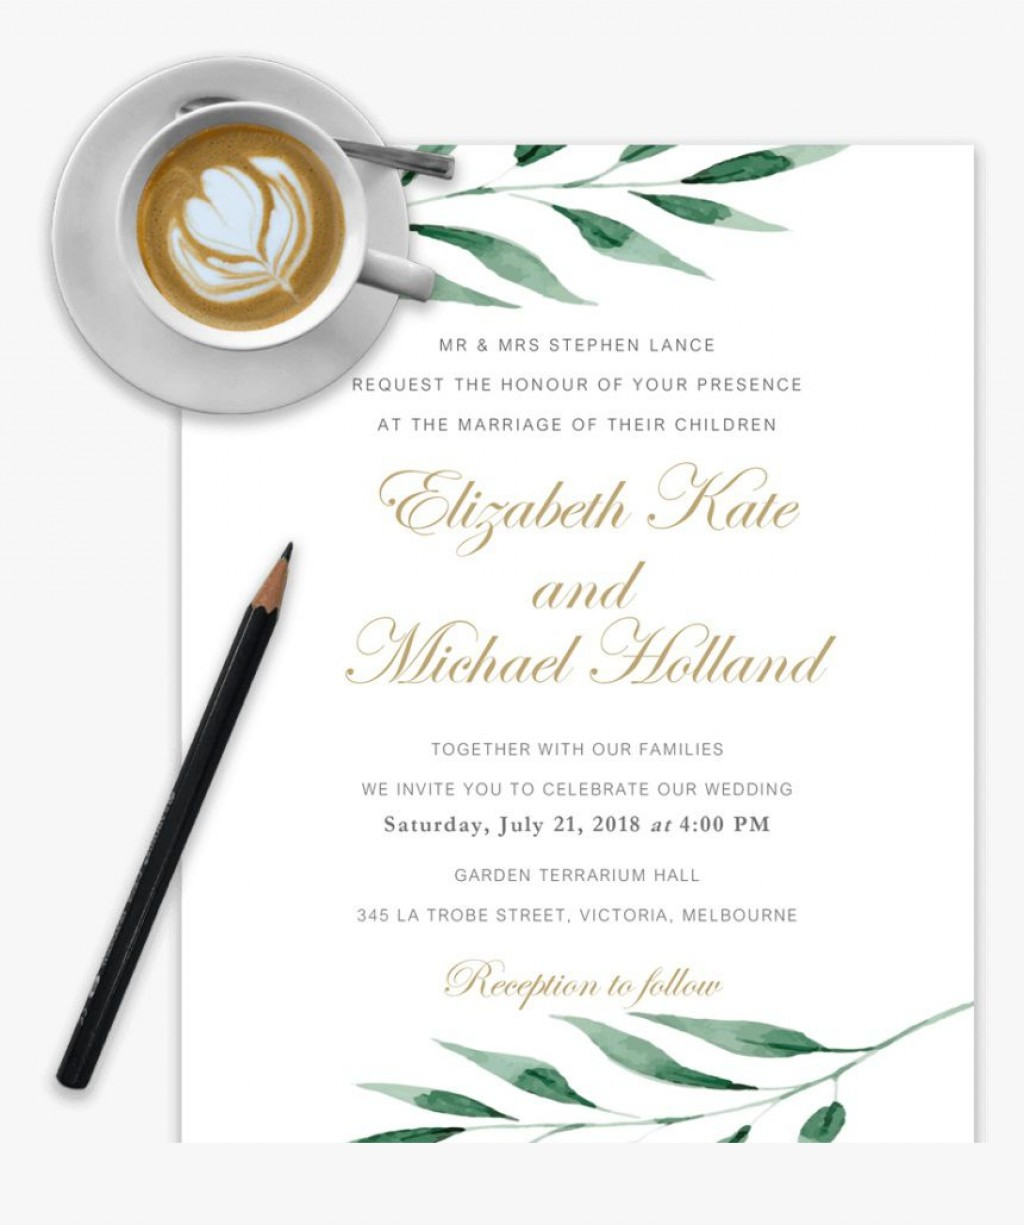 003 Staggering Free Invitation Template Word Image  Wedding For Tamil Christma PartyLarge